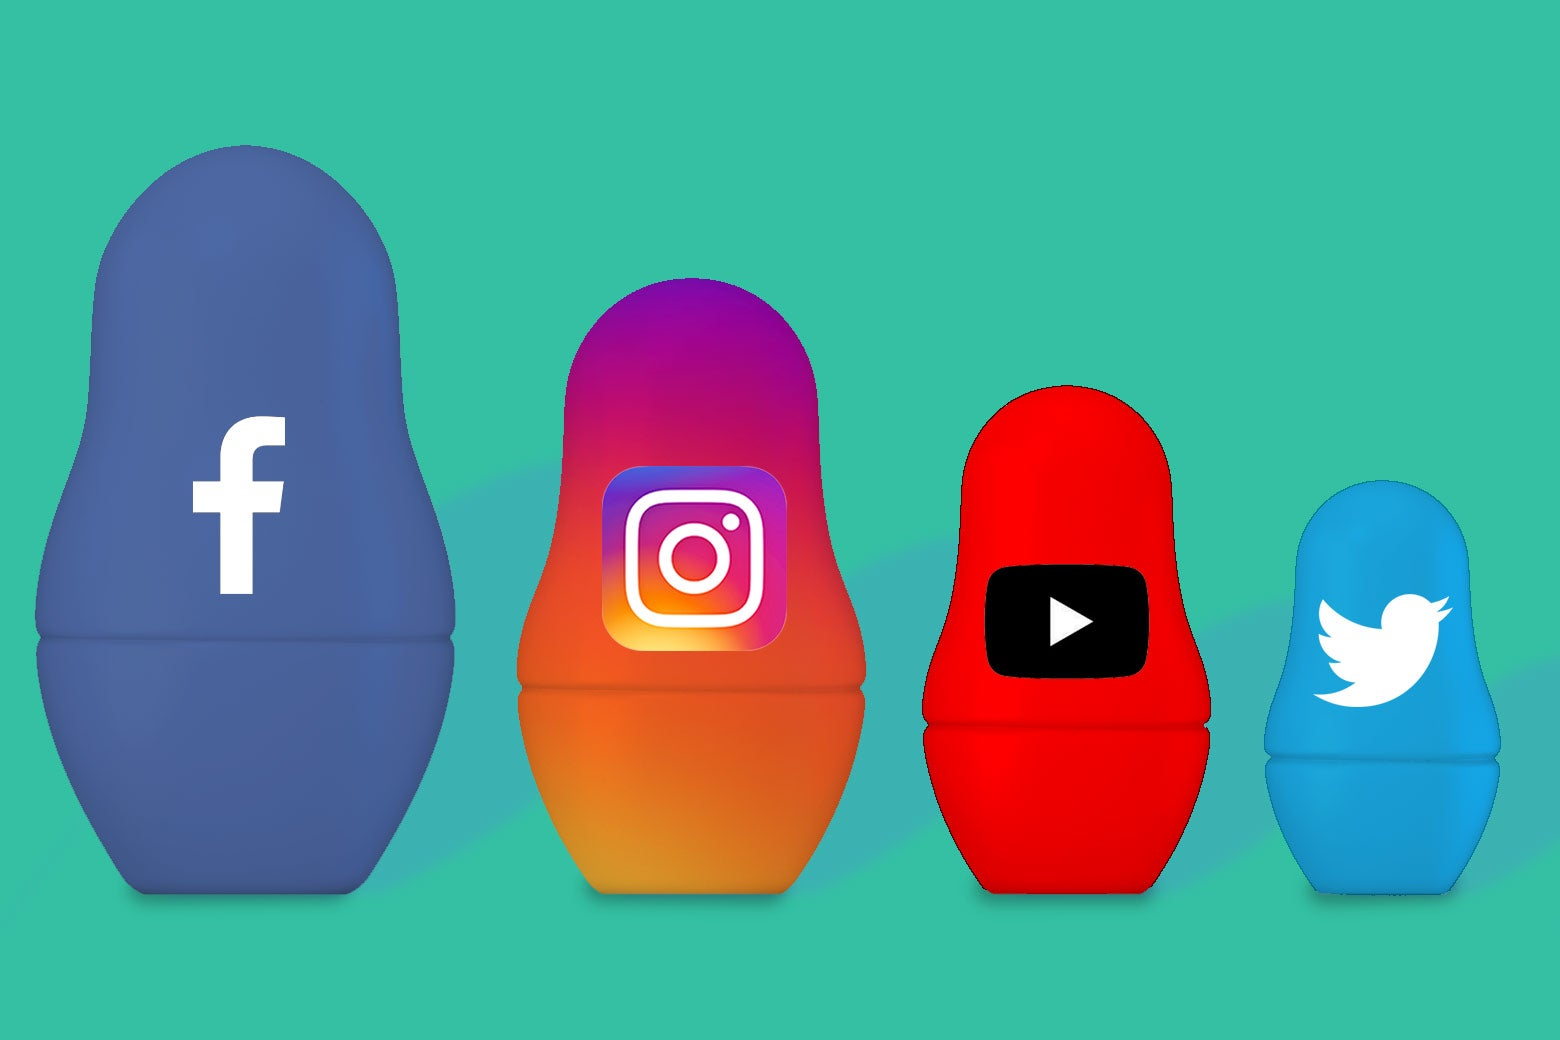 Facebook, Instagram, YouTube, and Twitter logos on the Russian nesting dolls